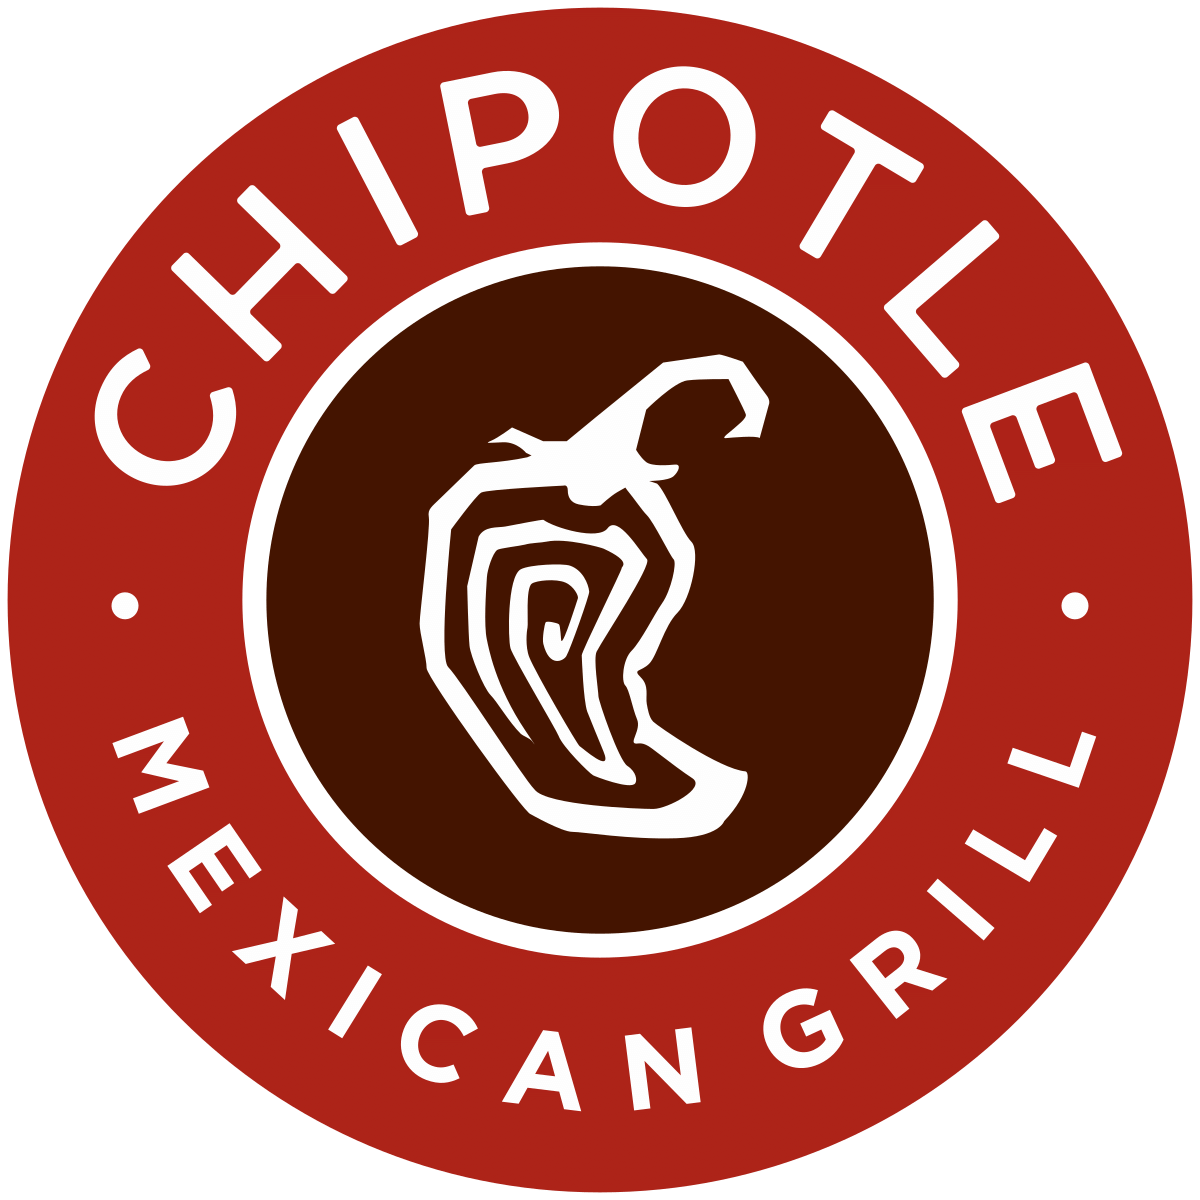 Chipotle: Delivery on Minimum $10 Online Orders